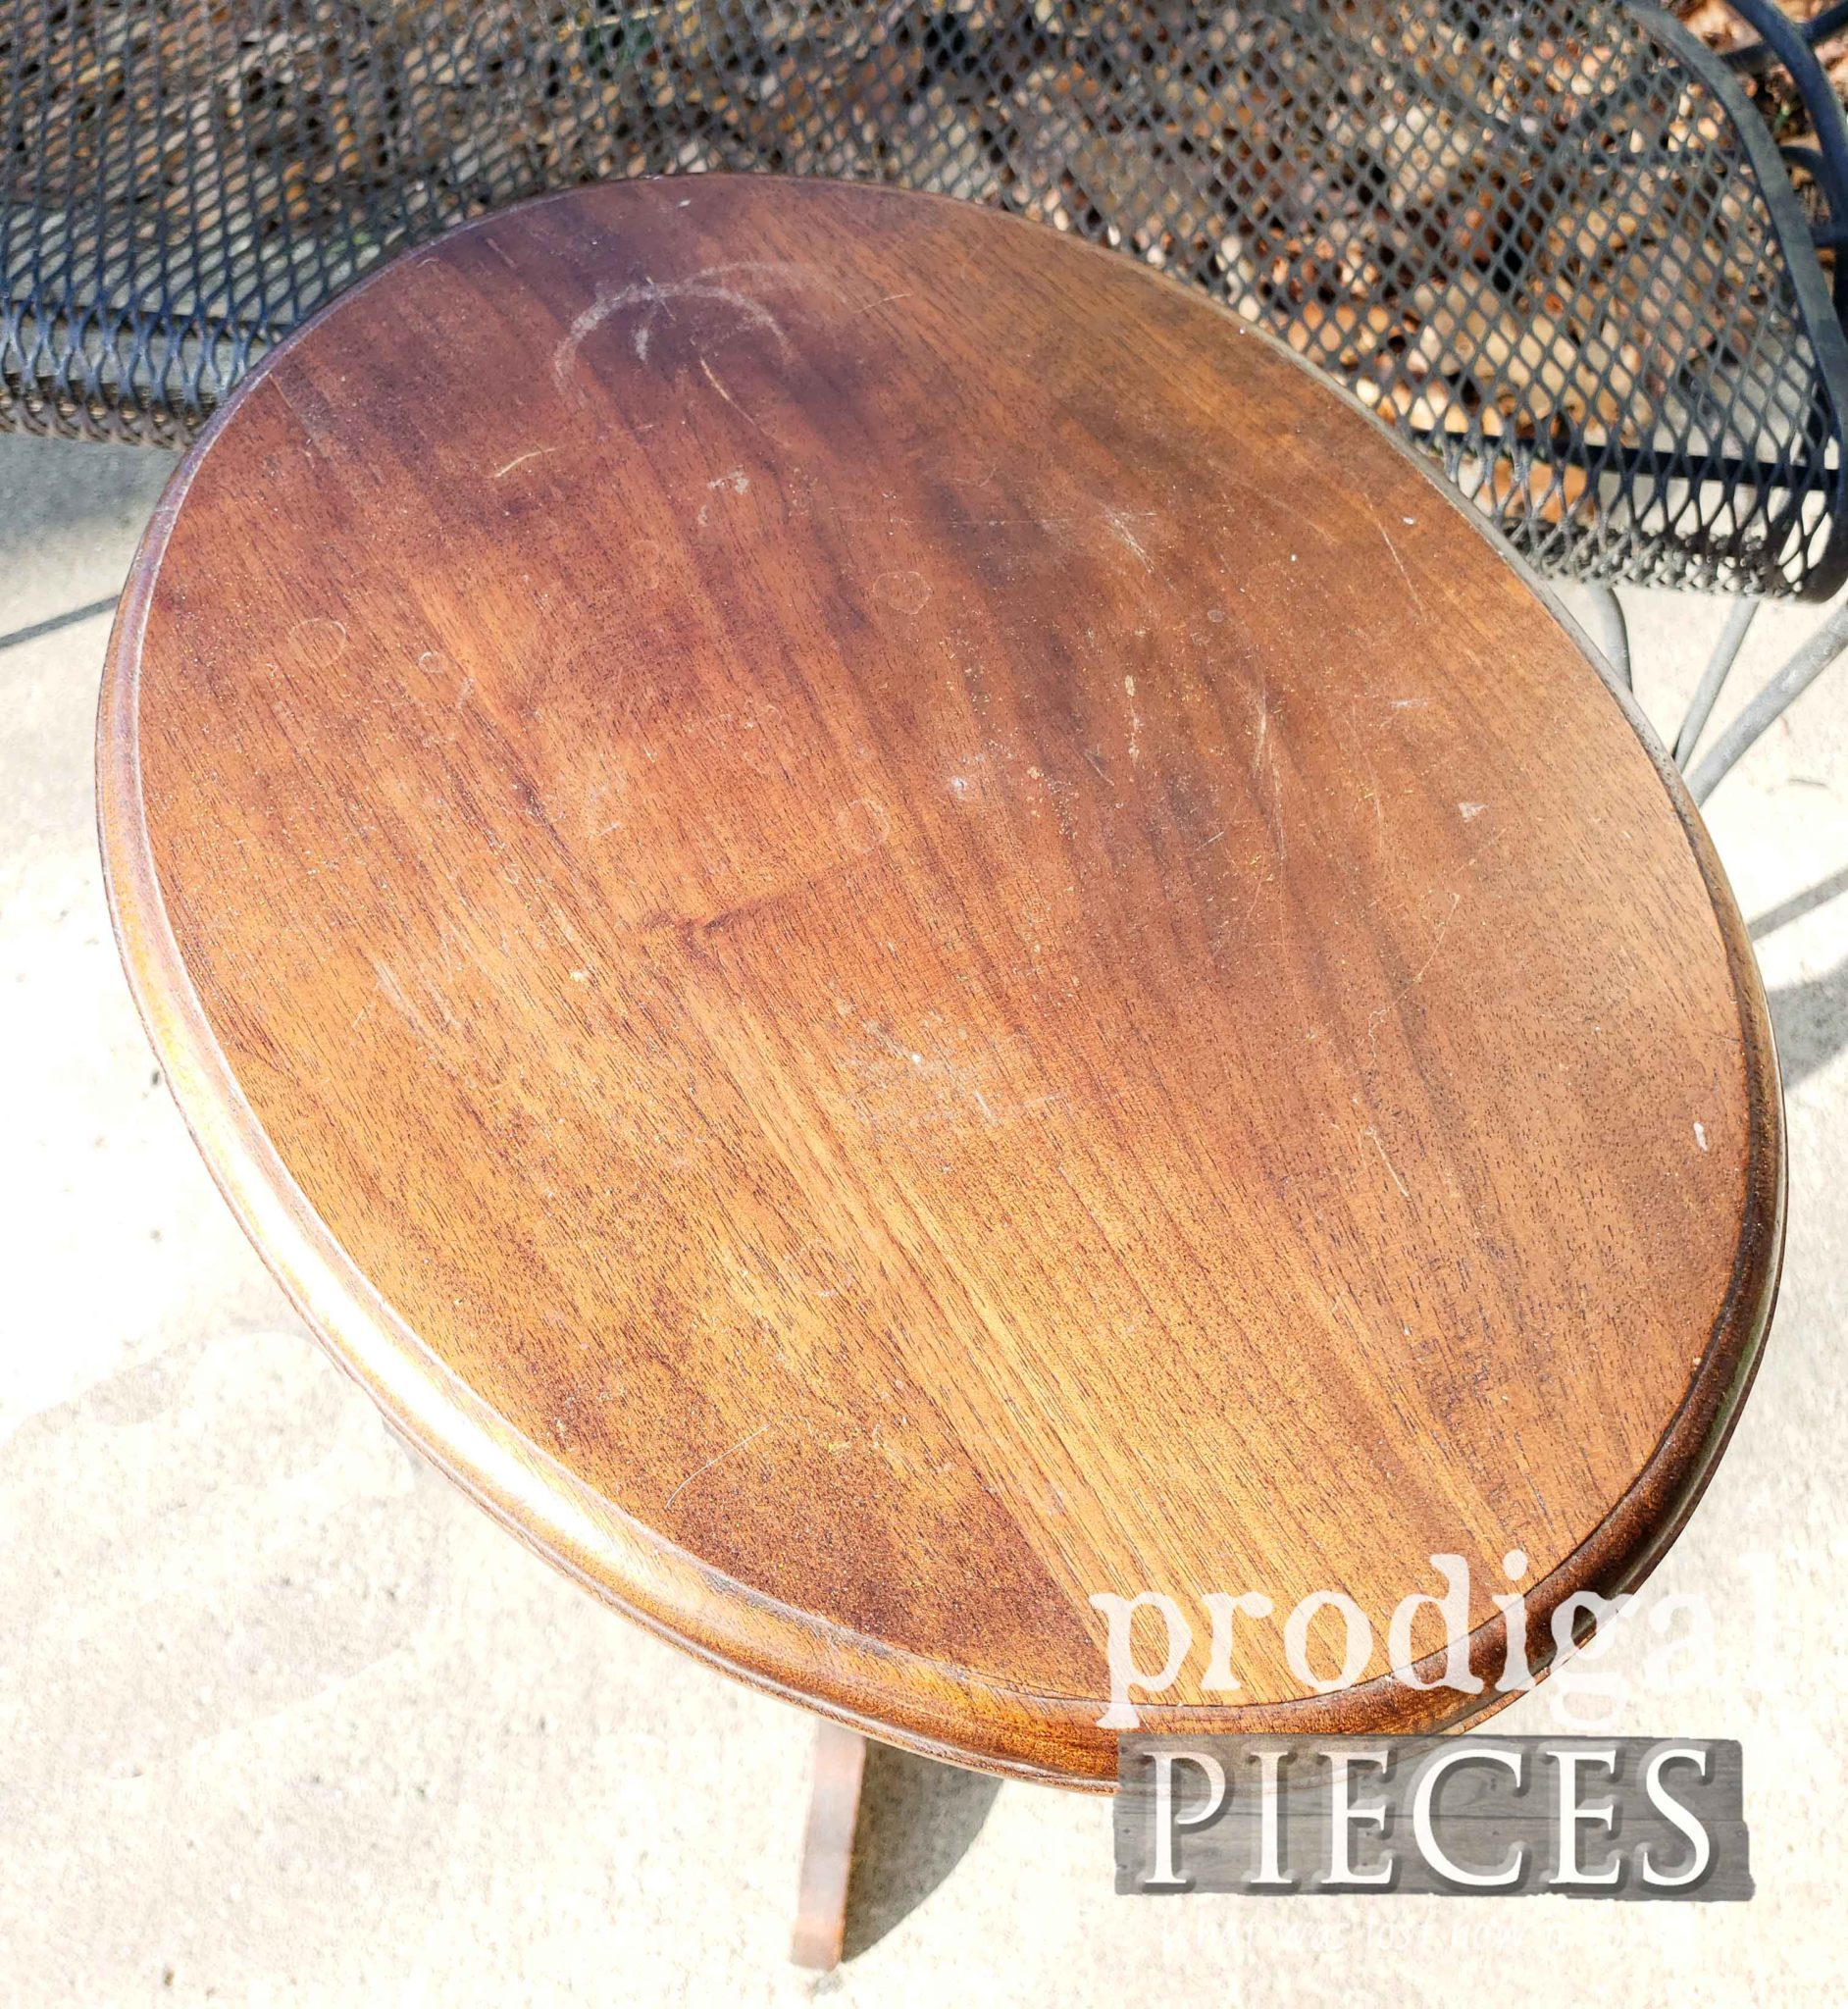 Vintage Accent Table Top Damaged | prodigalpieces.com